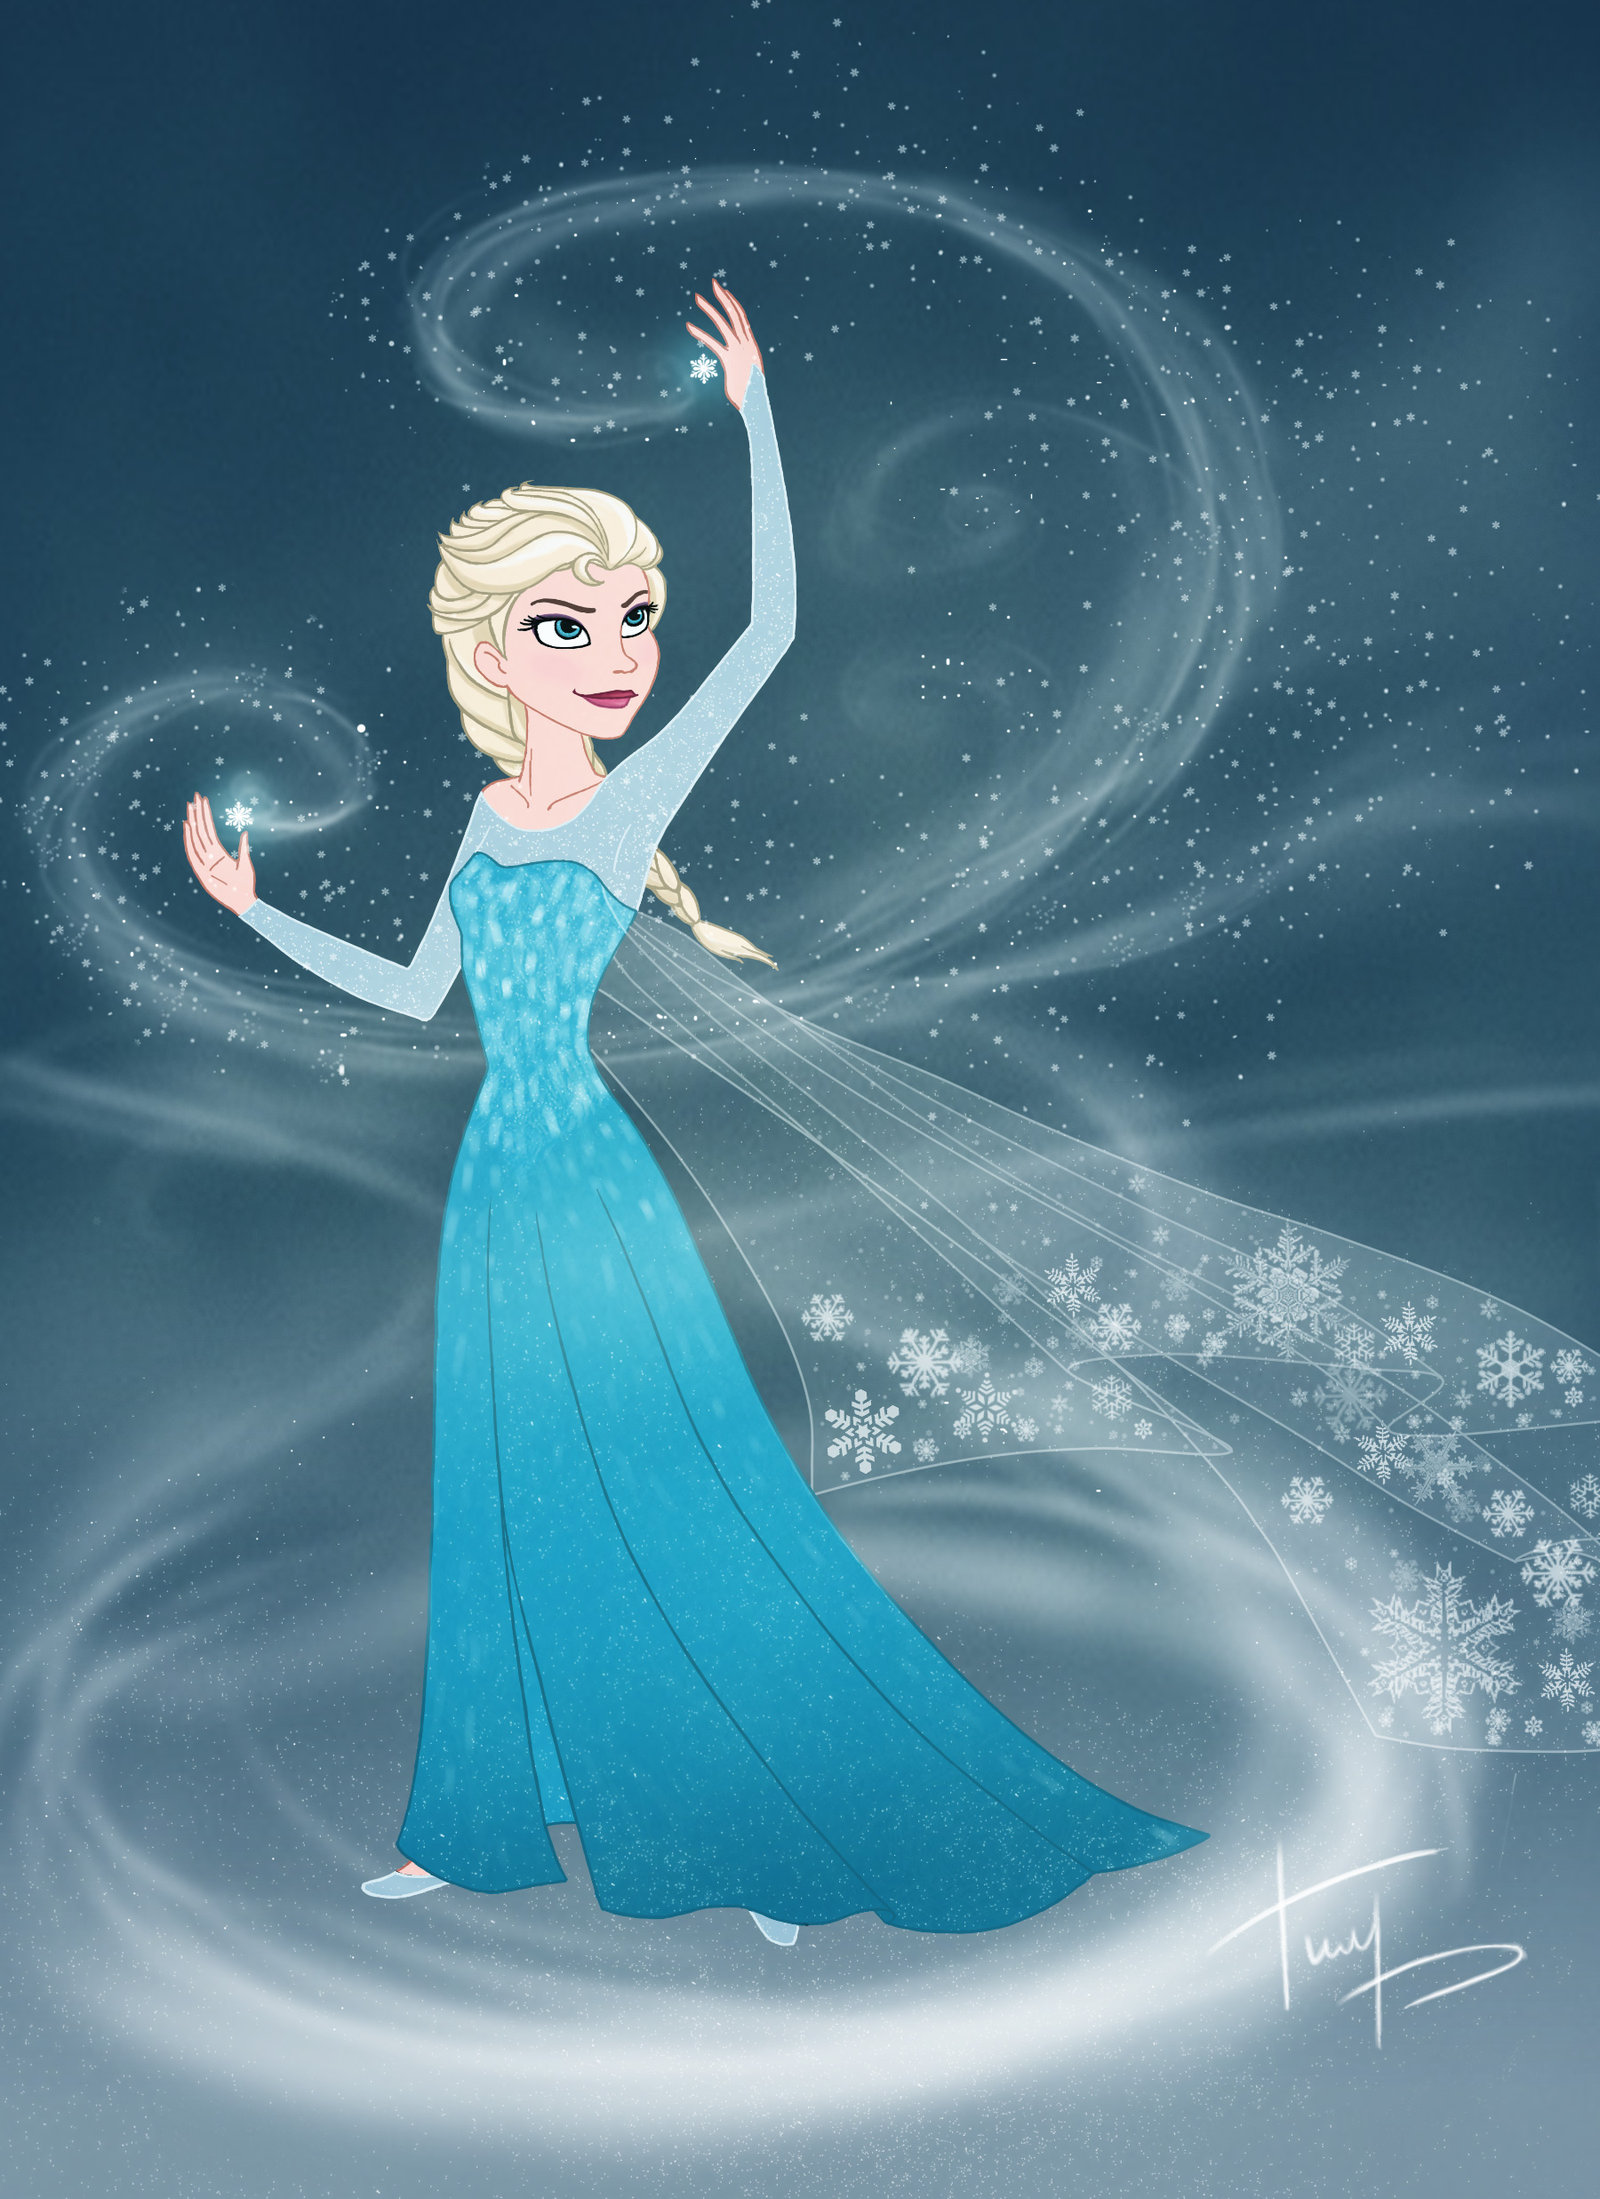 Latest Comments For This Entry With Frozen Elsa Iphone Wallpaper